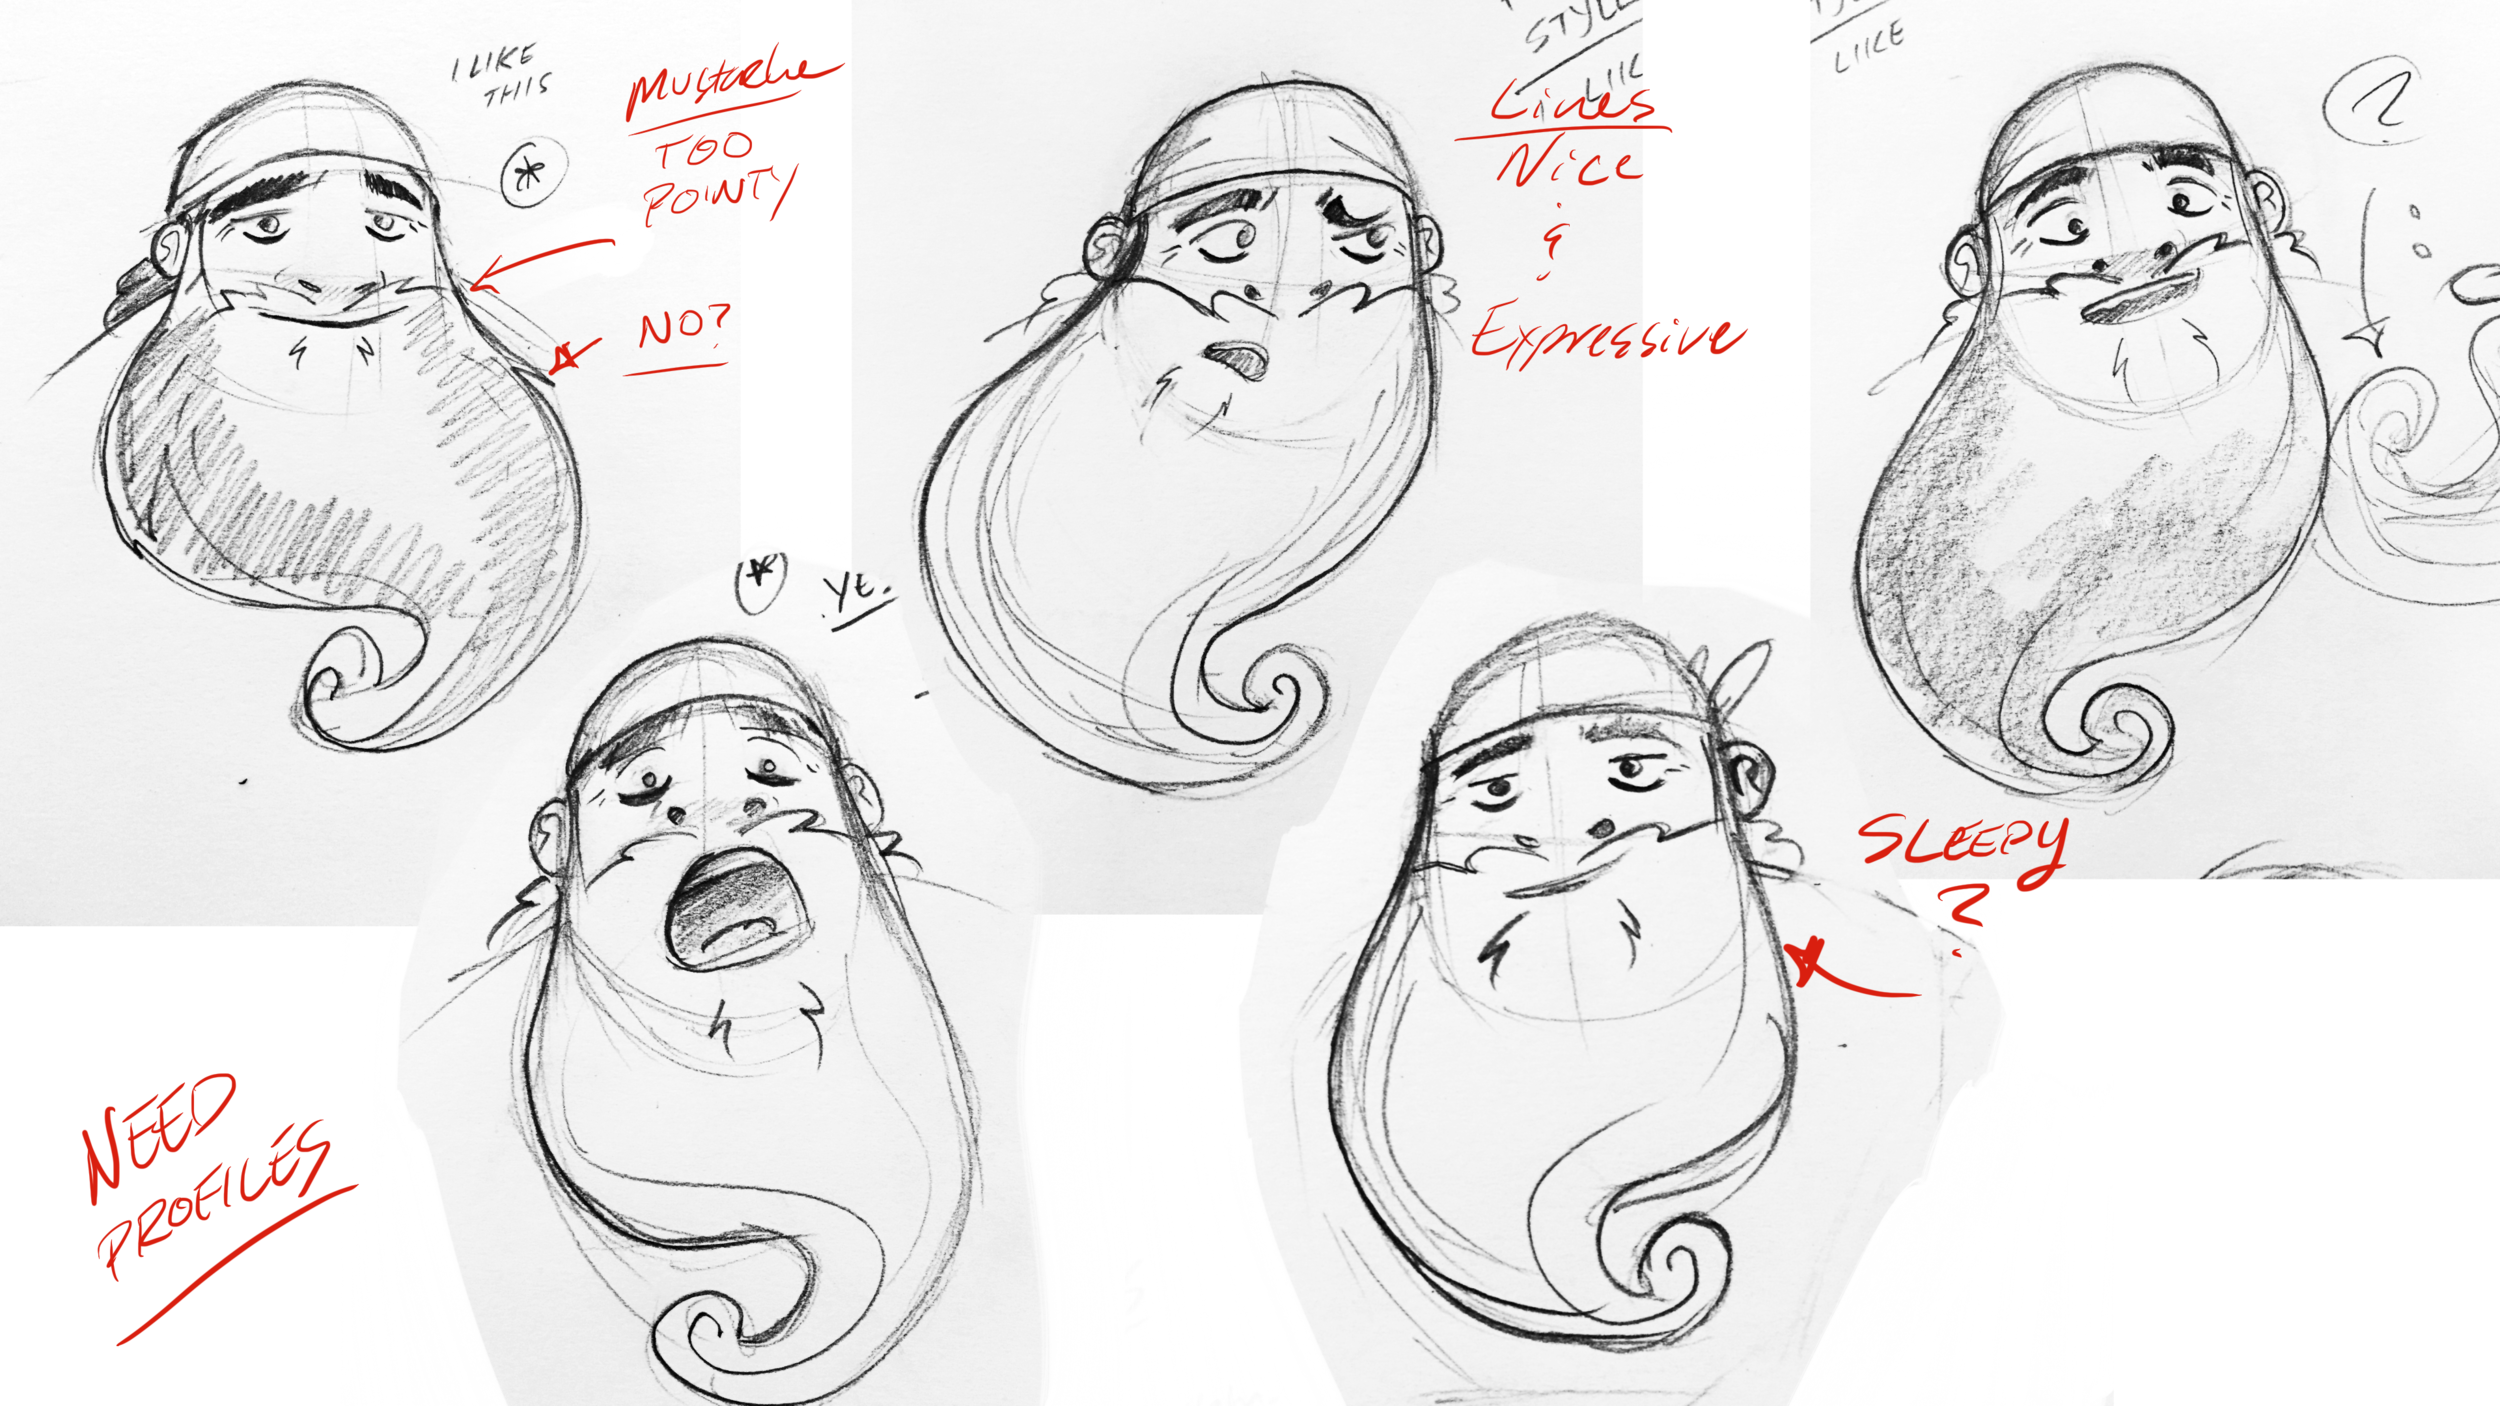 020216_RB_Expressions_v01.png